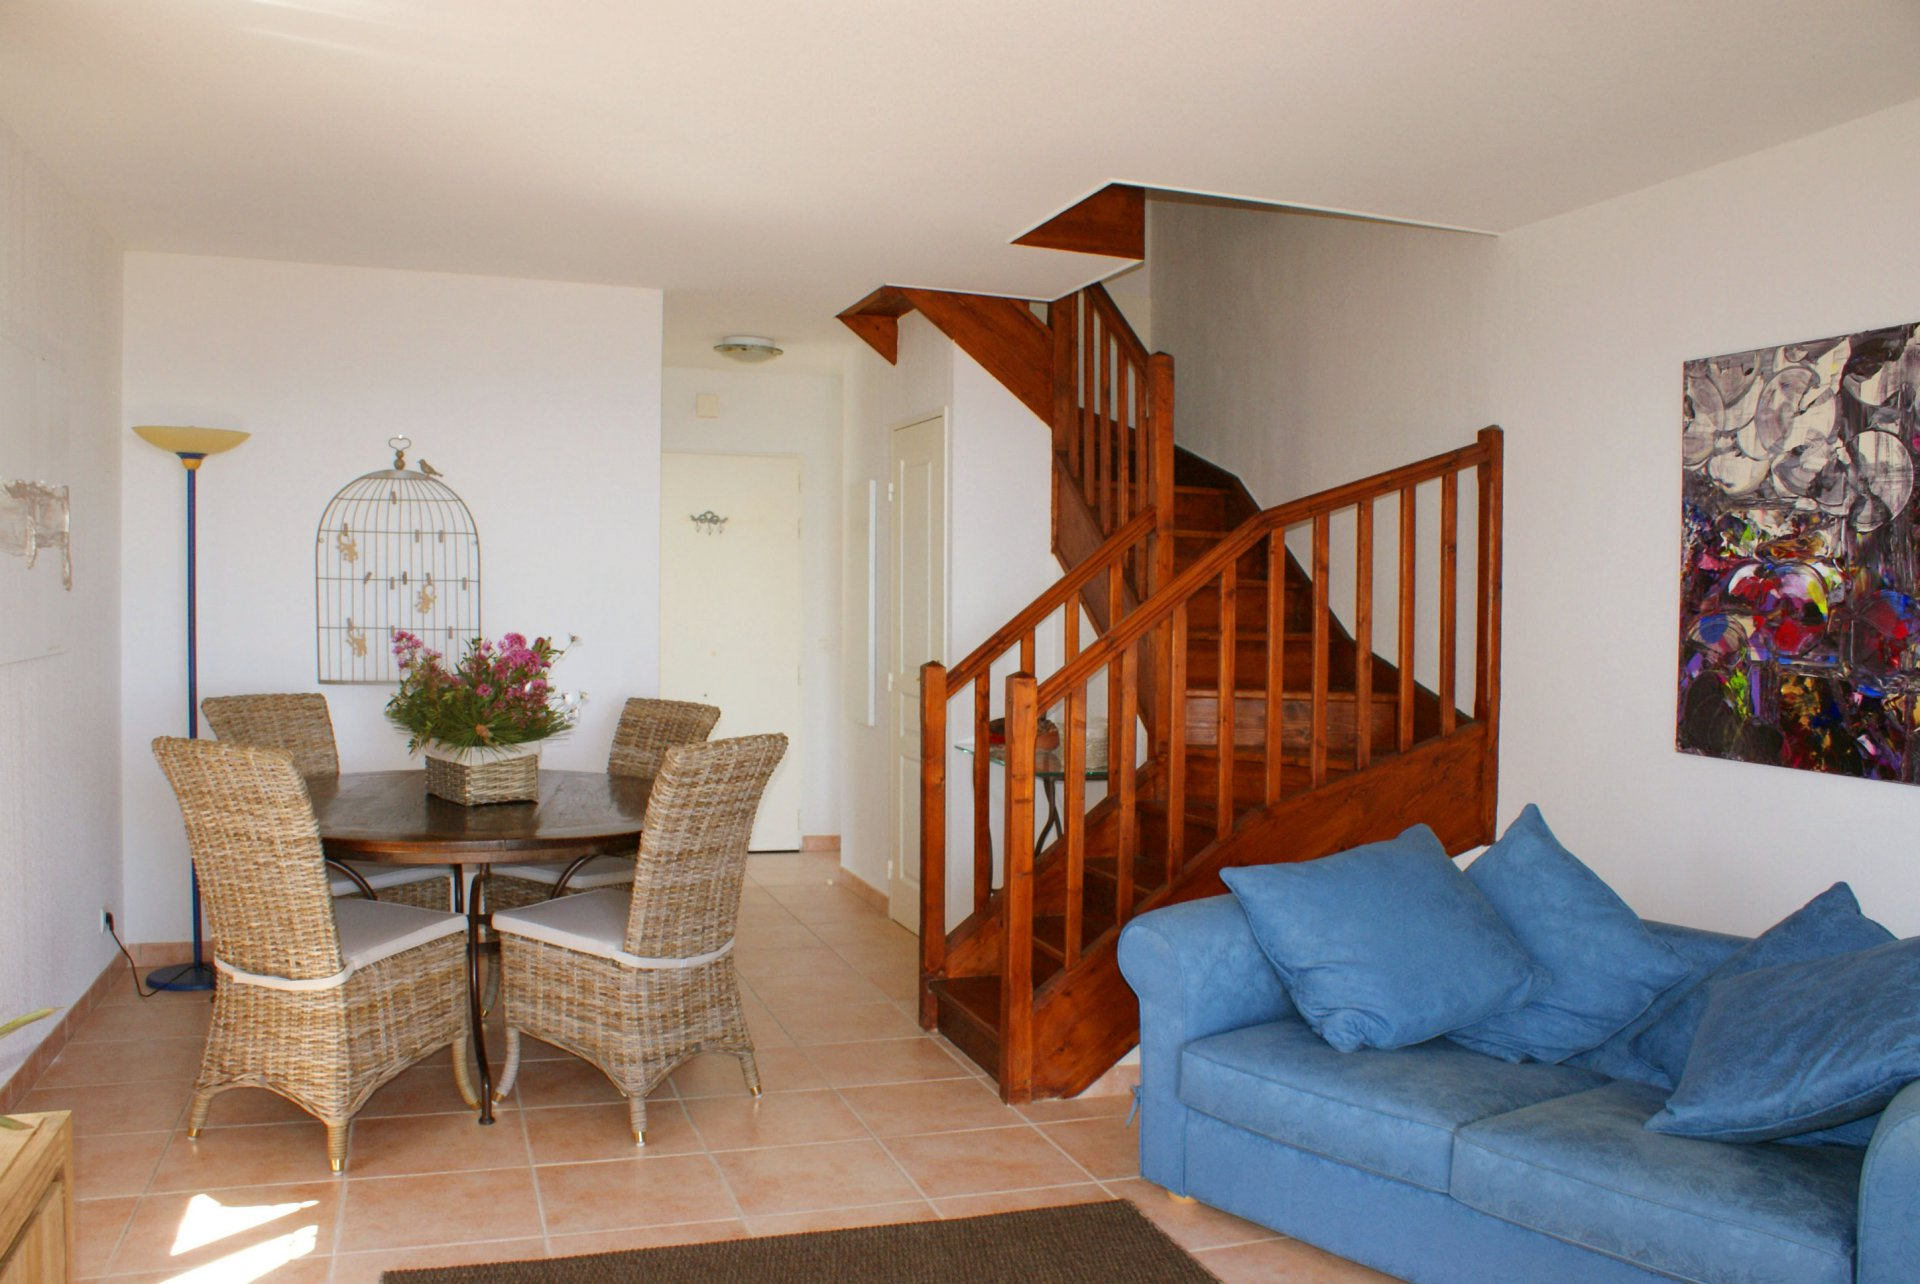 Semi detached house: living room, 2  bedrooms (4 sleeps) american kitchen garden terrace, sea view * ROVI 6 *